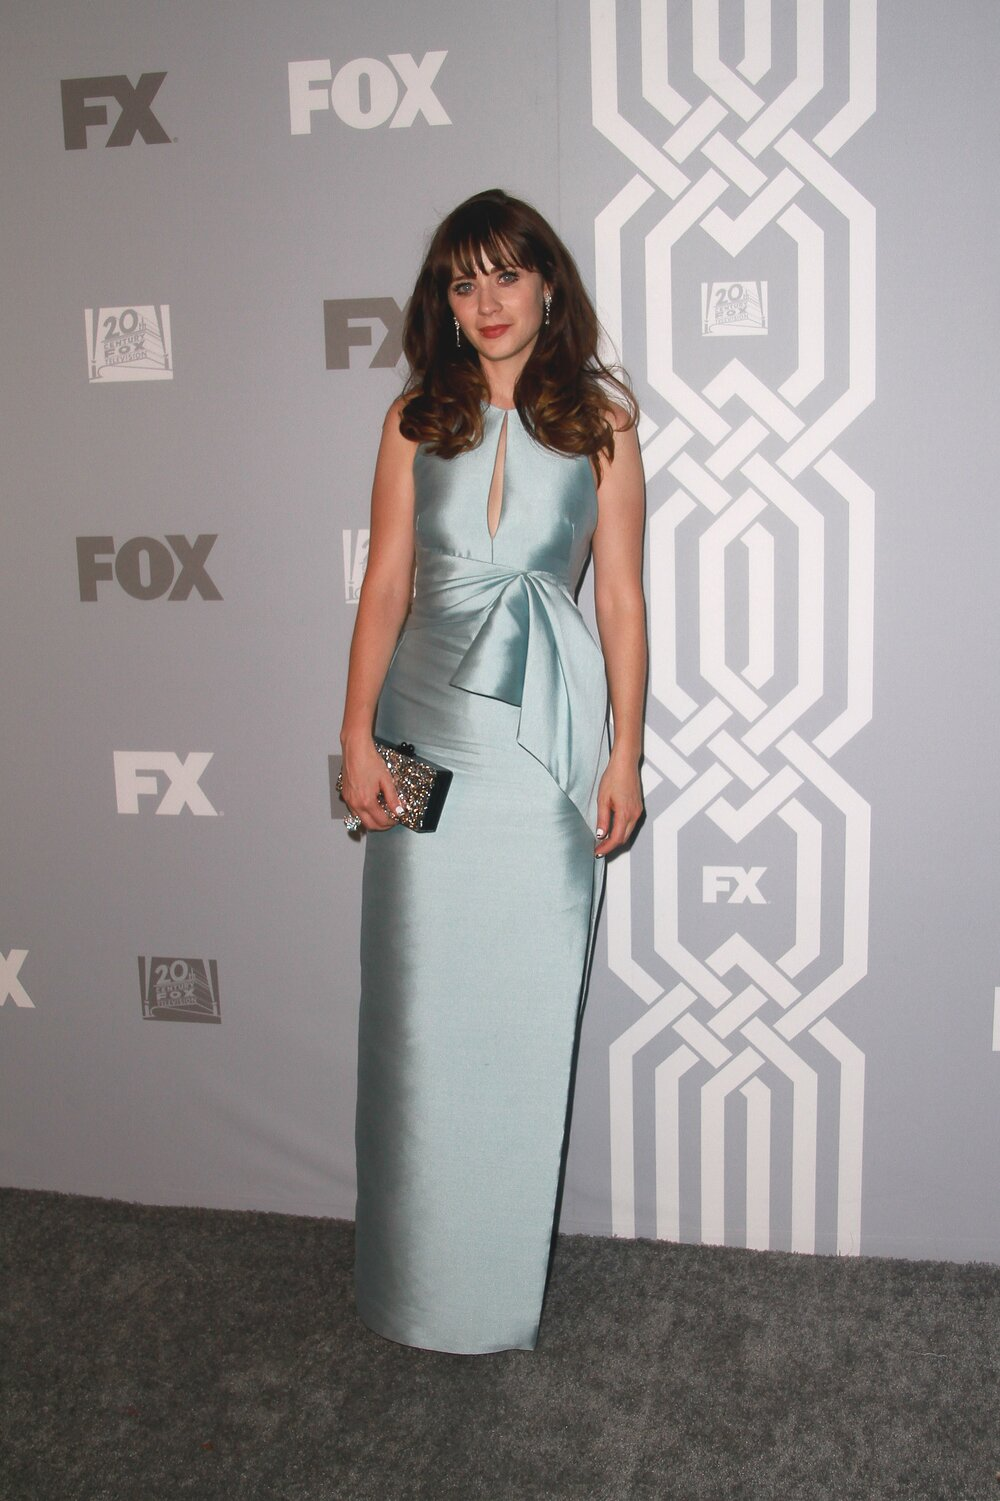 Zooey_Deschanel_717.JPG